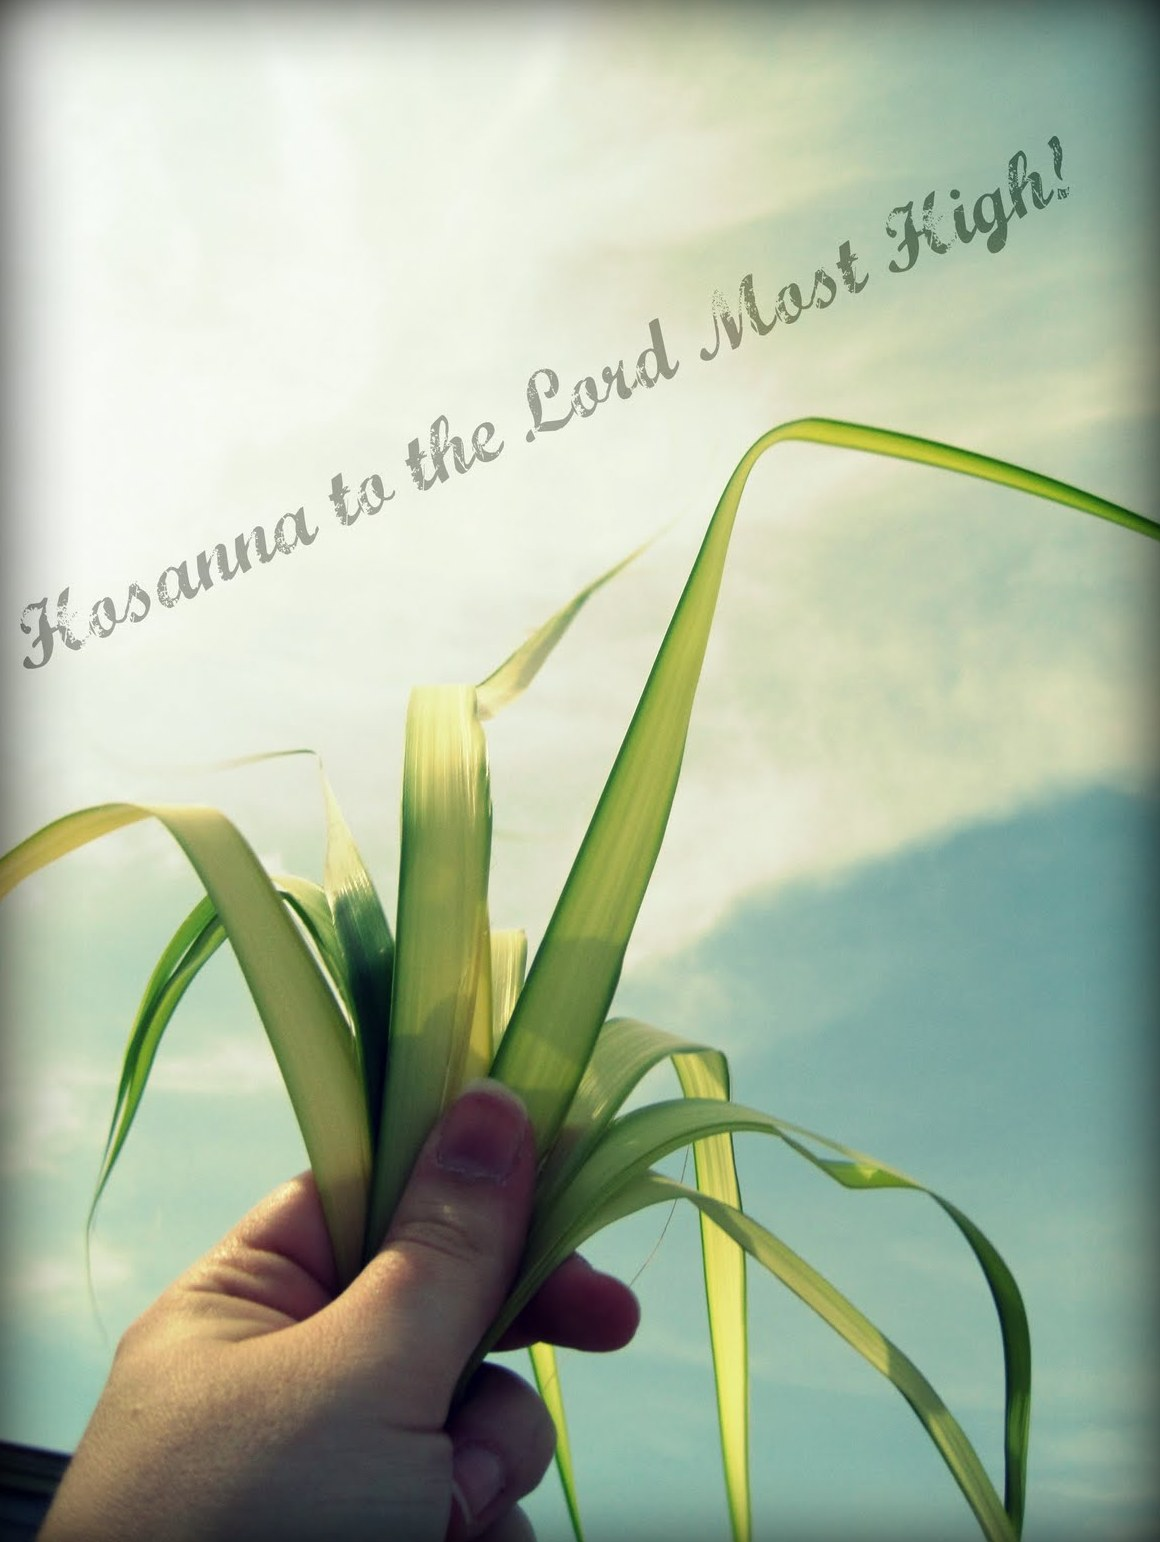 Palm Sunday Wallpapers 2015 Download 1160x1542